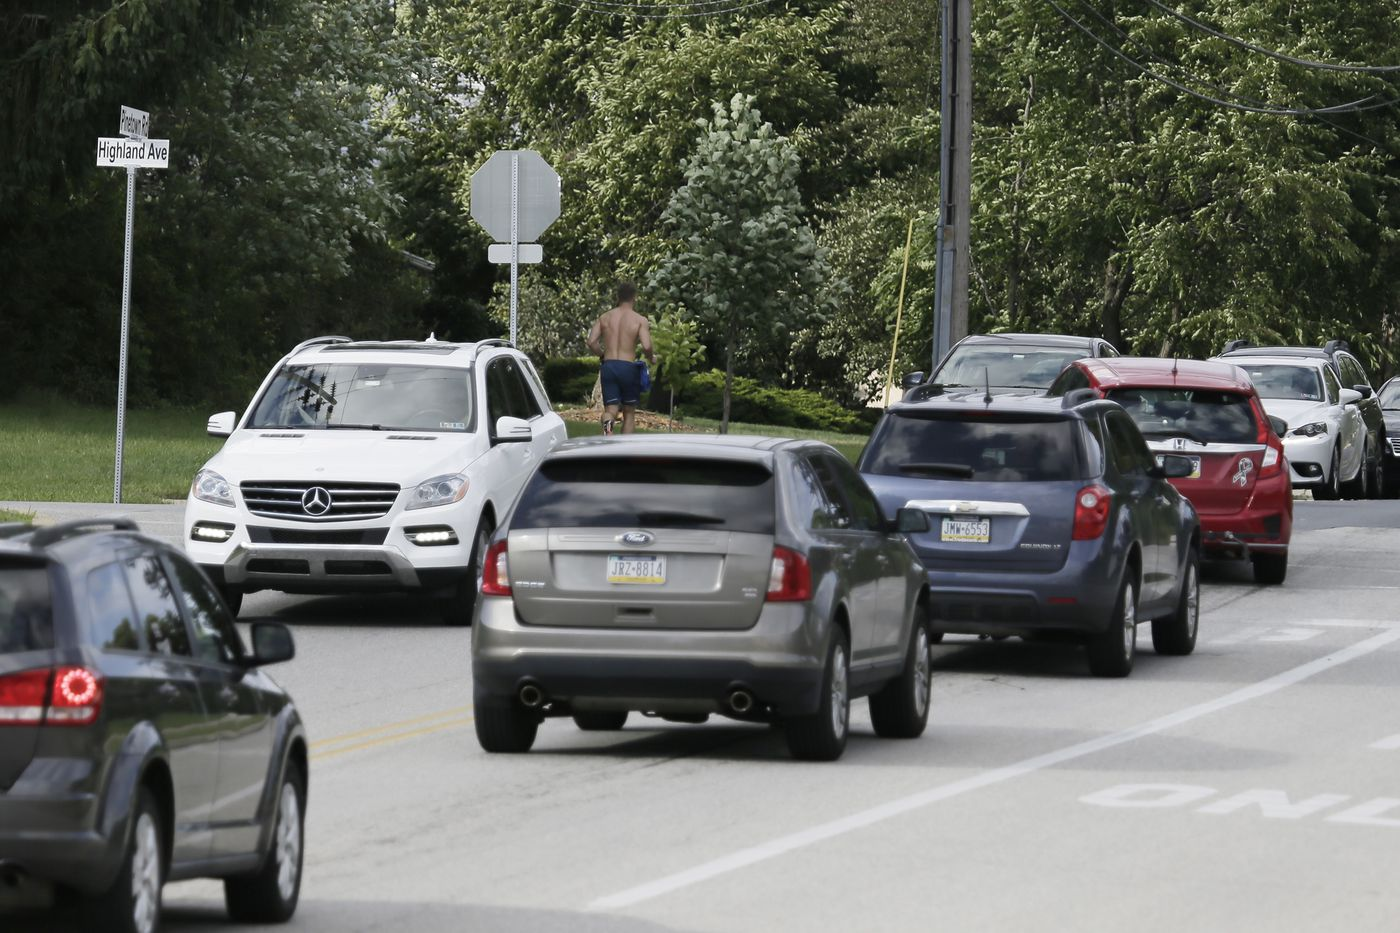 A 64-year-old document is reigniting traffic concerns in Montgomery County